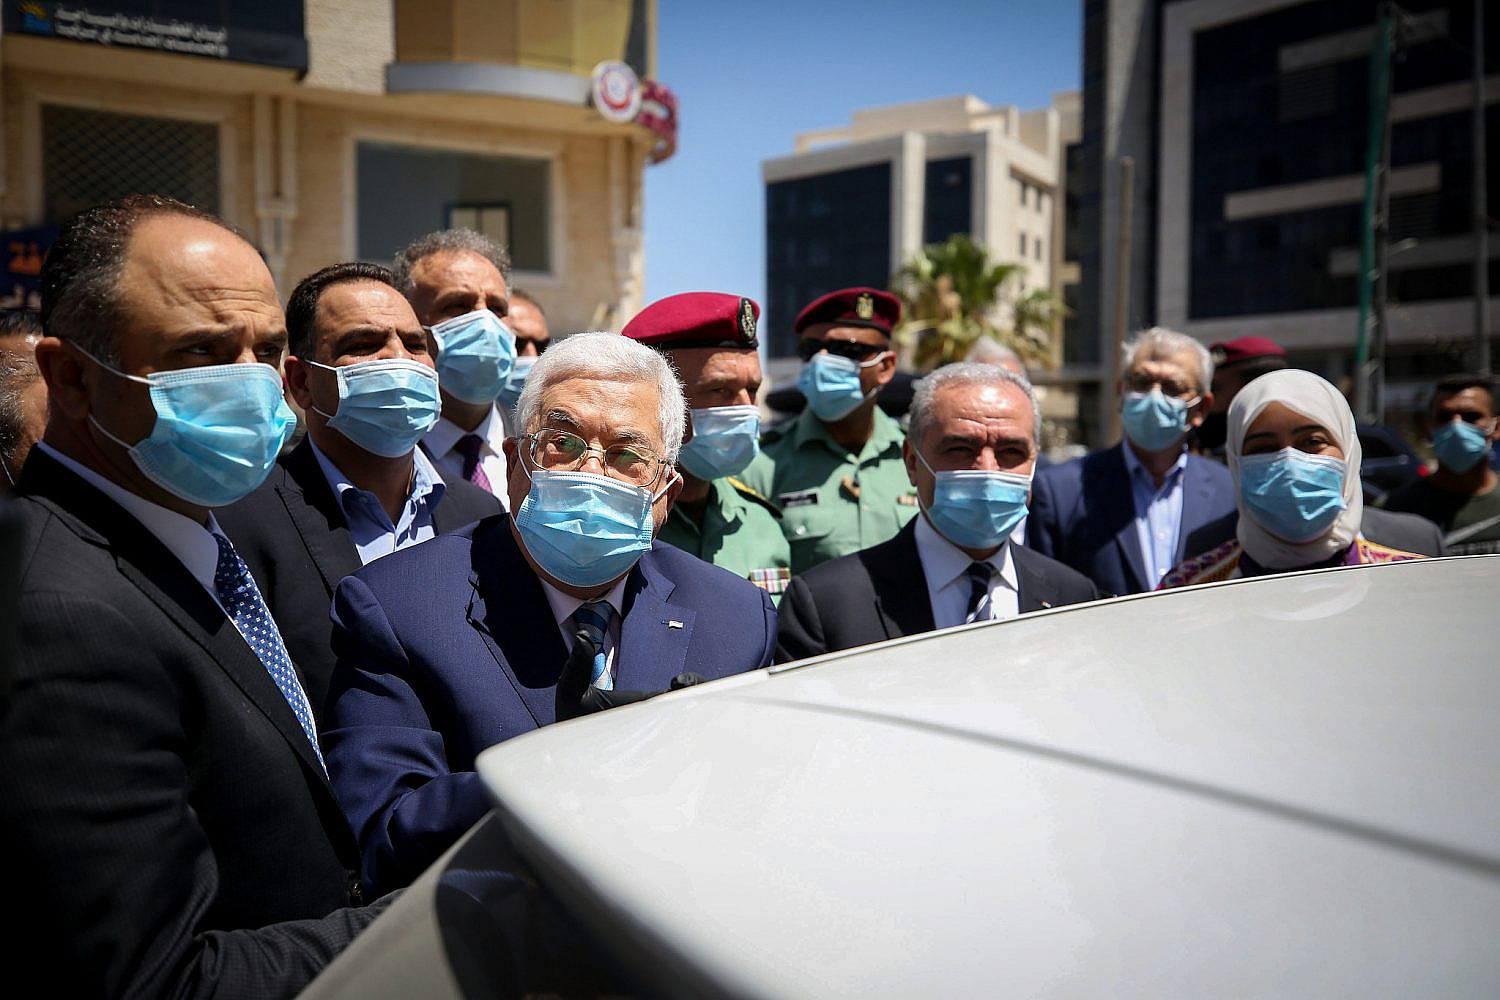 Palestinian President Mahmoud Abbas seen during a tour in the West Bank city of Ramallah, May 15, 2020. (Flash90)